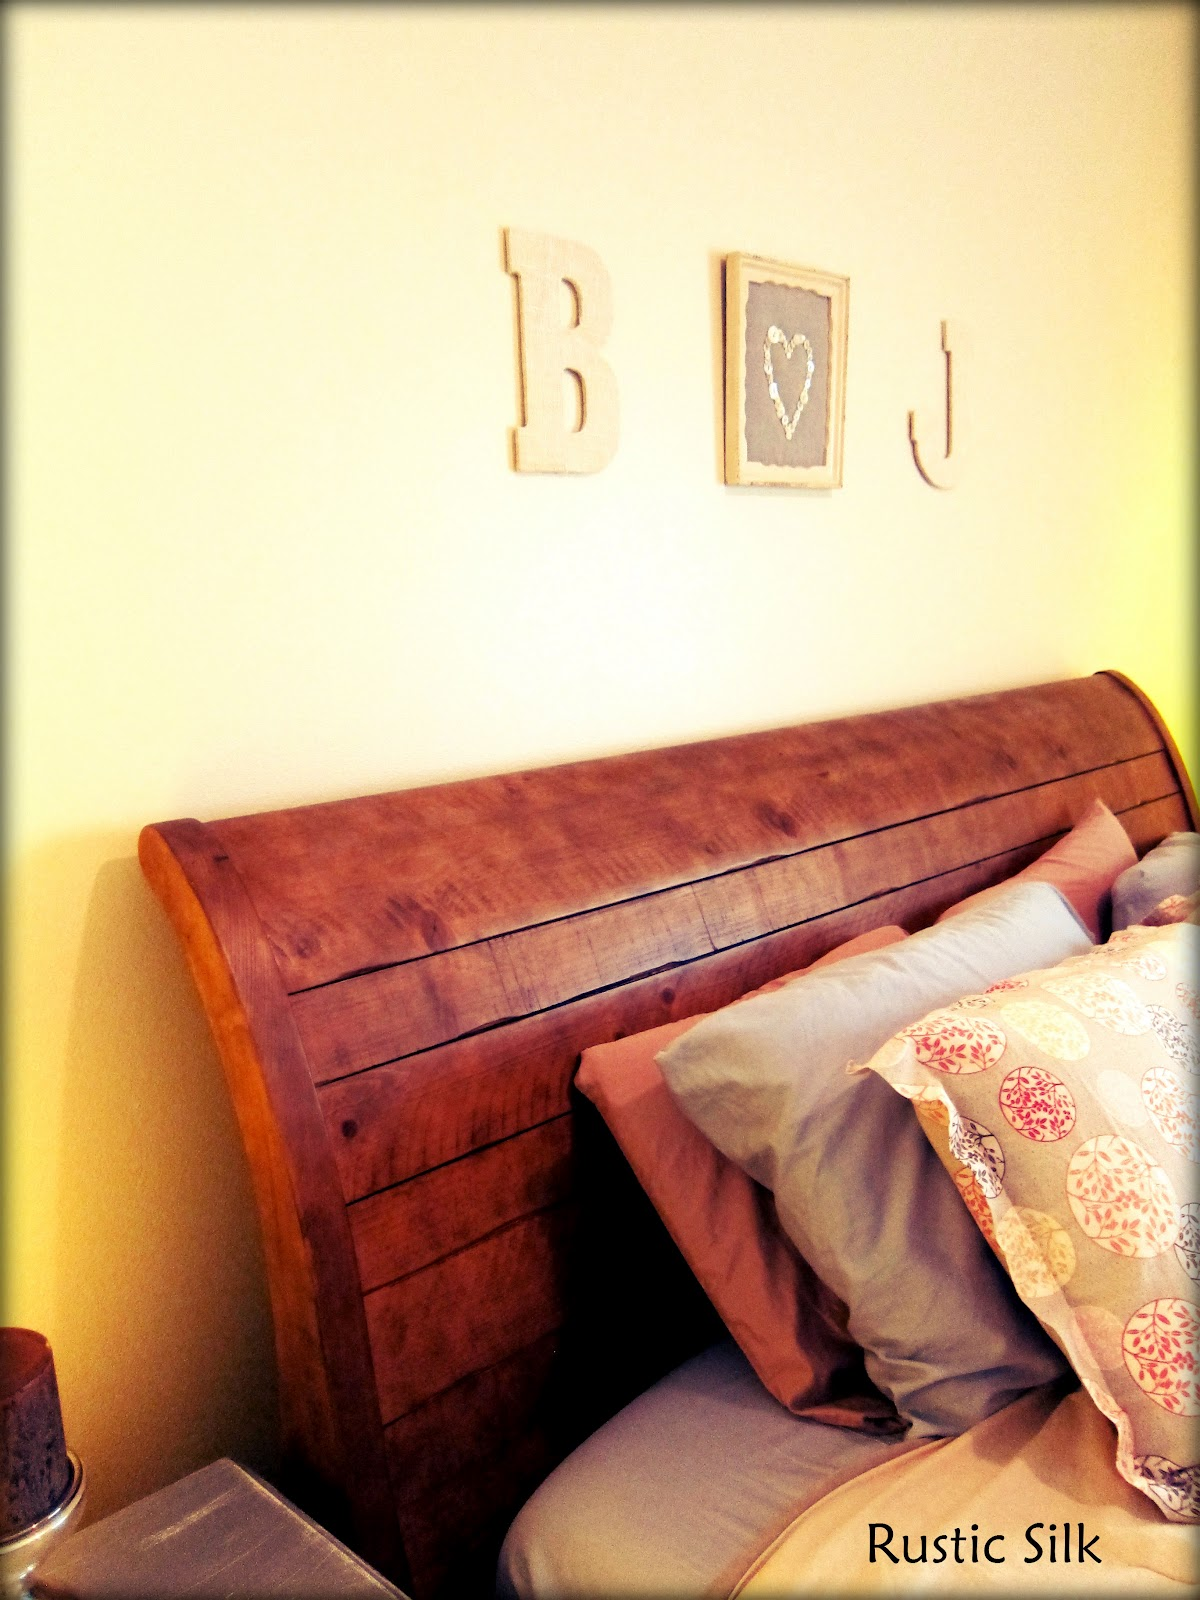 Rustic Silk: Burlap Letters How To